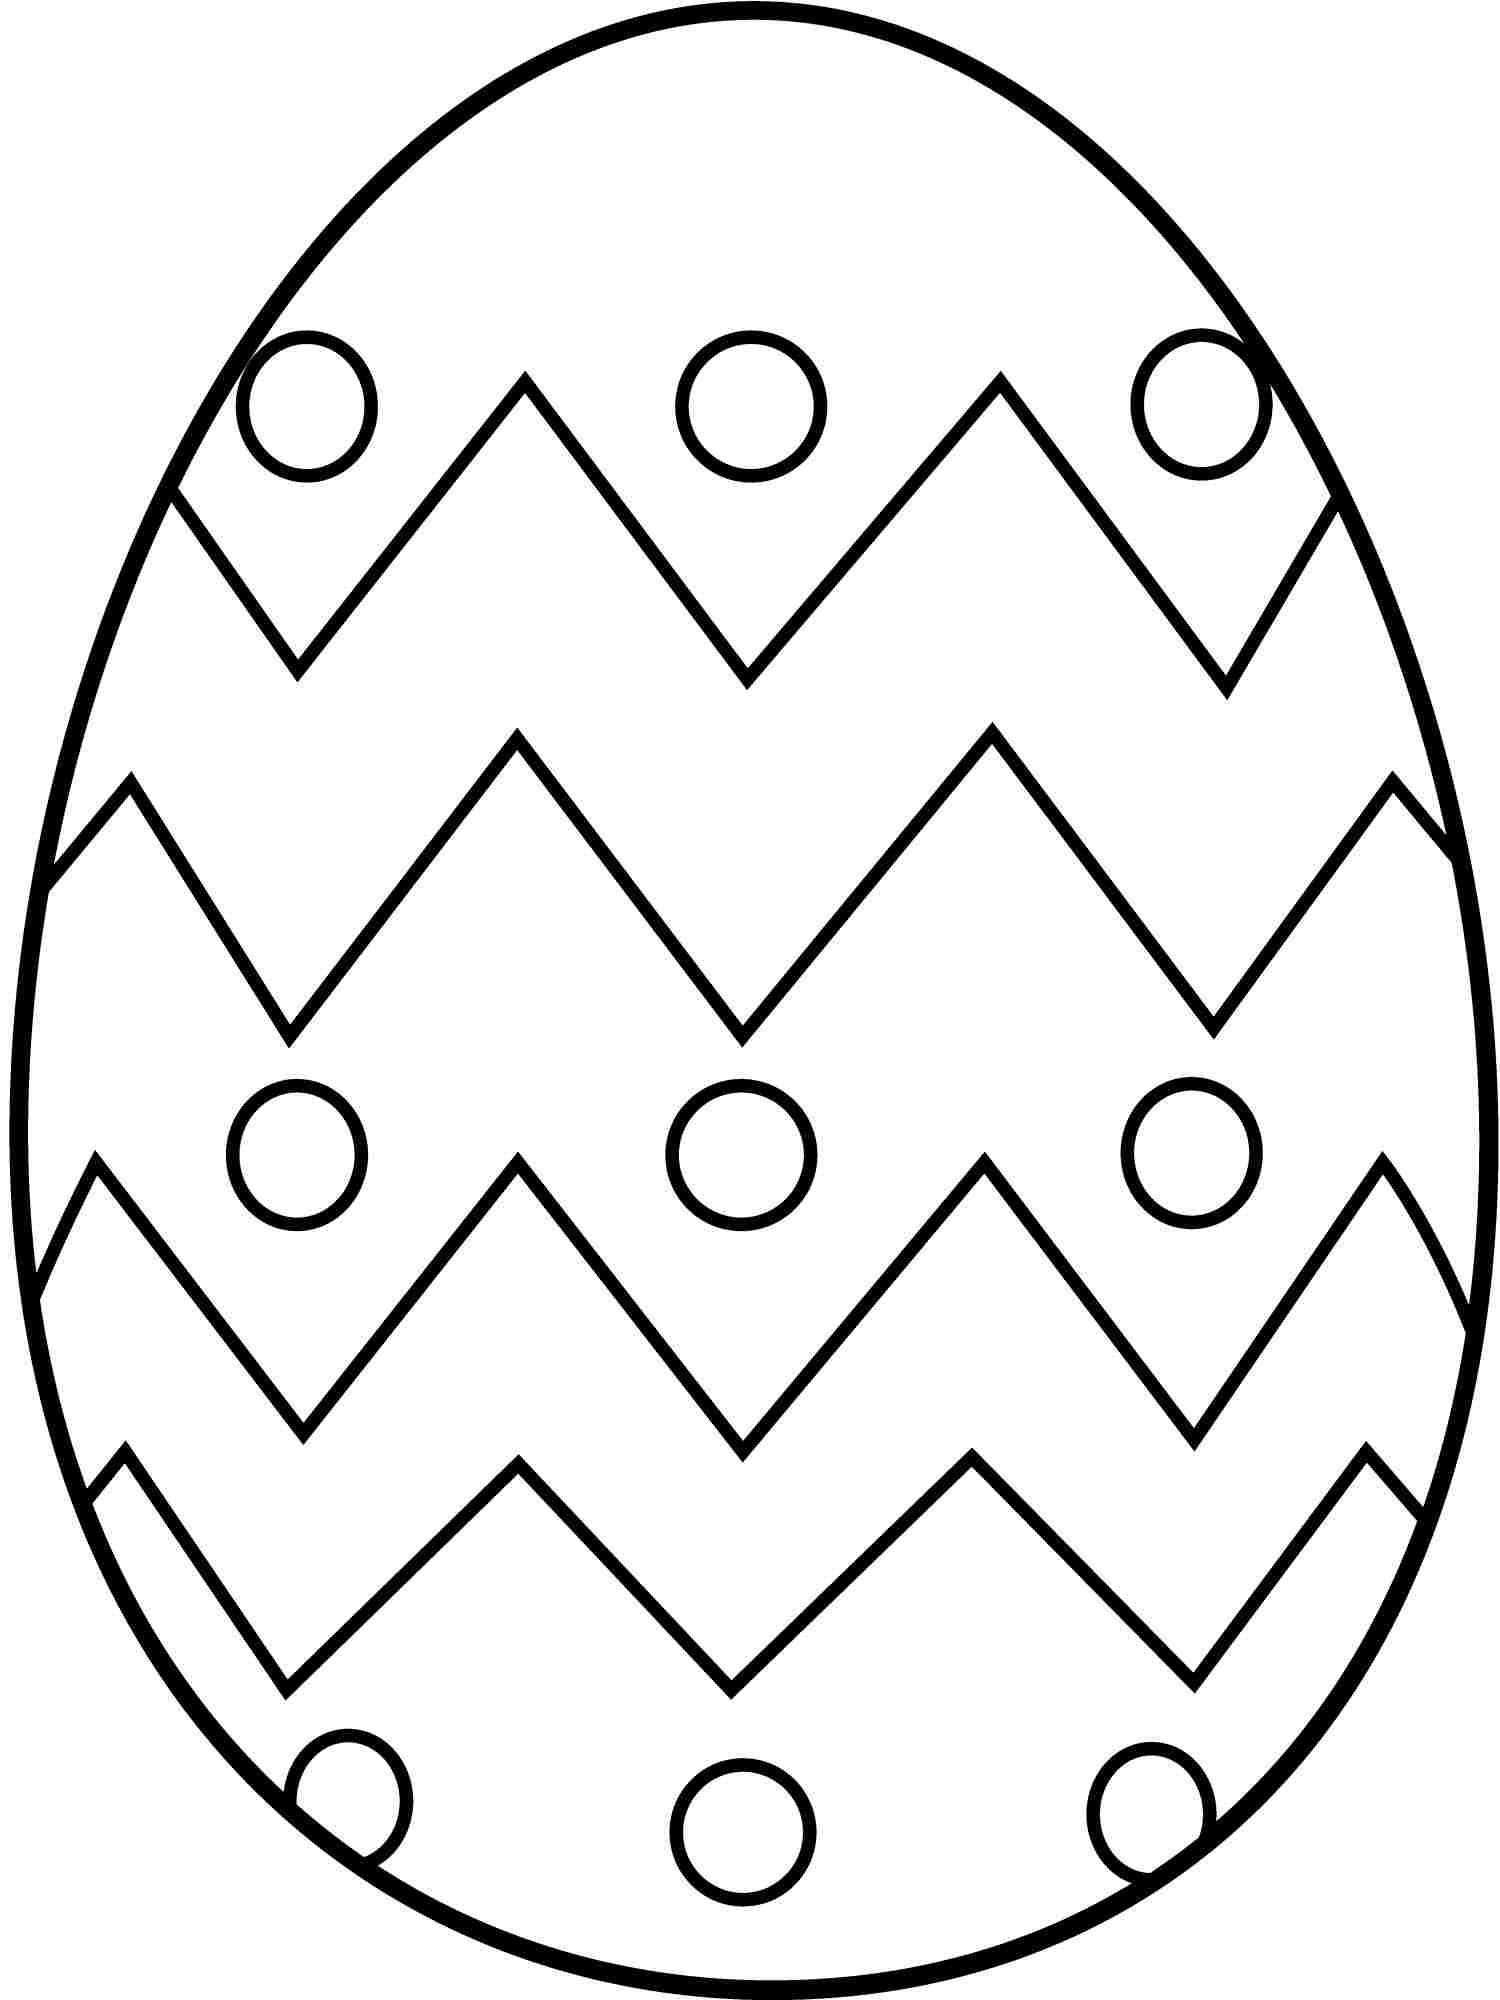 Printable Easter Coloring Sheets Printable Free Design Easter Coloring Pages Printable Easter Coloring Sheets Easter Egg Pictures